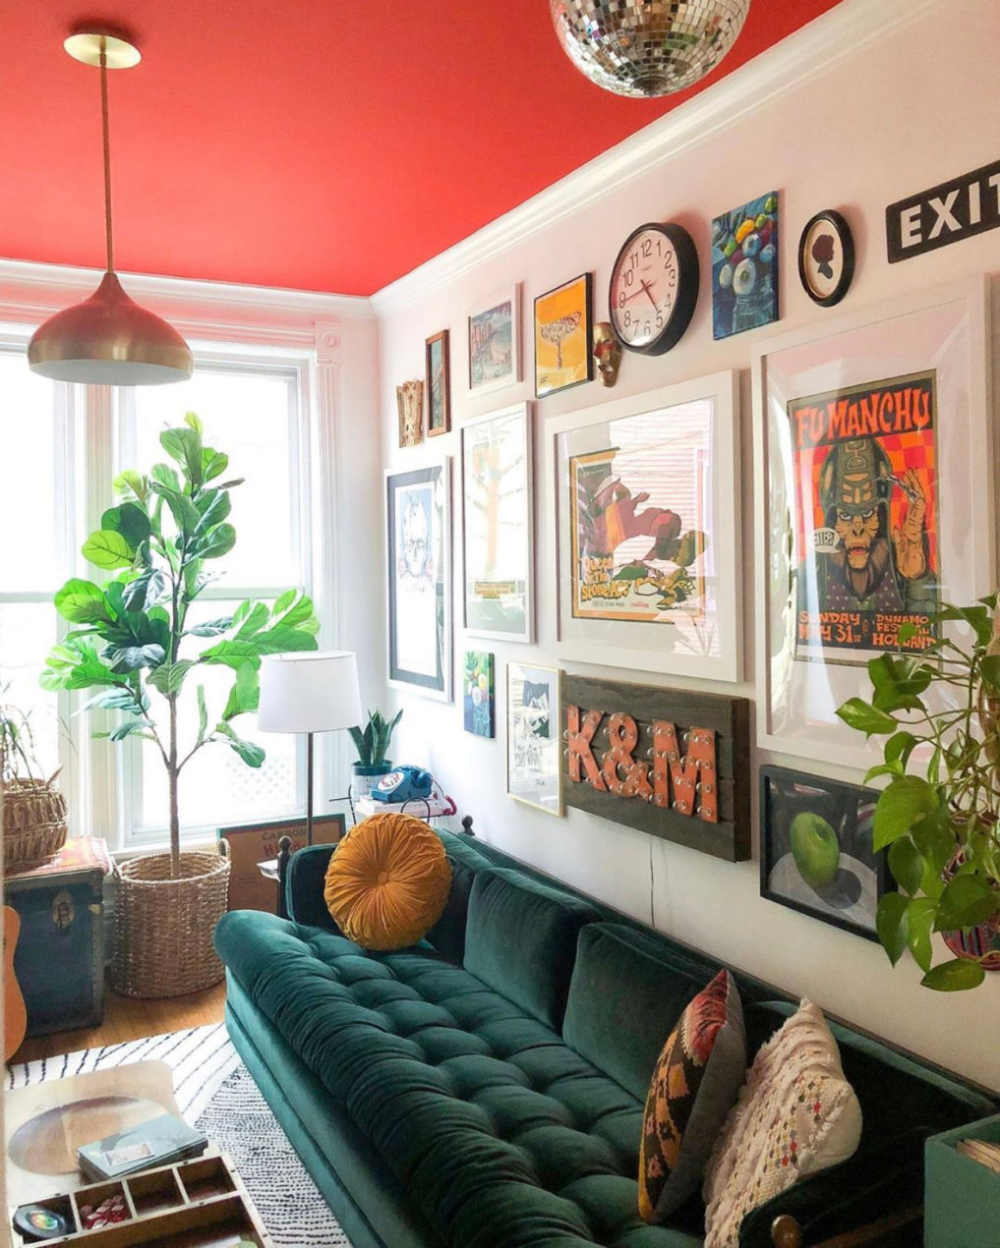 Love this colorful room with red ceiling, blue velvet sofa and eclectic gallery wall #gallerywall #velvetsofa #paintedceiling #colorfuldecor #colorlovers #eclecticdecor #vintagedecor #fiddleleaffig #bohodecor #redpaint #discoball #art #housetour